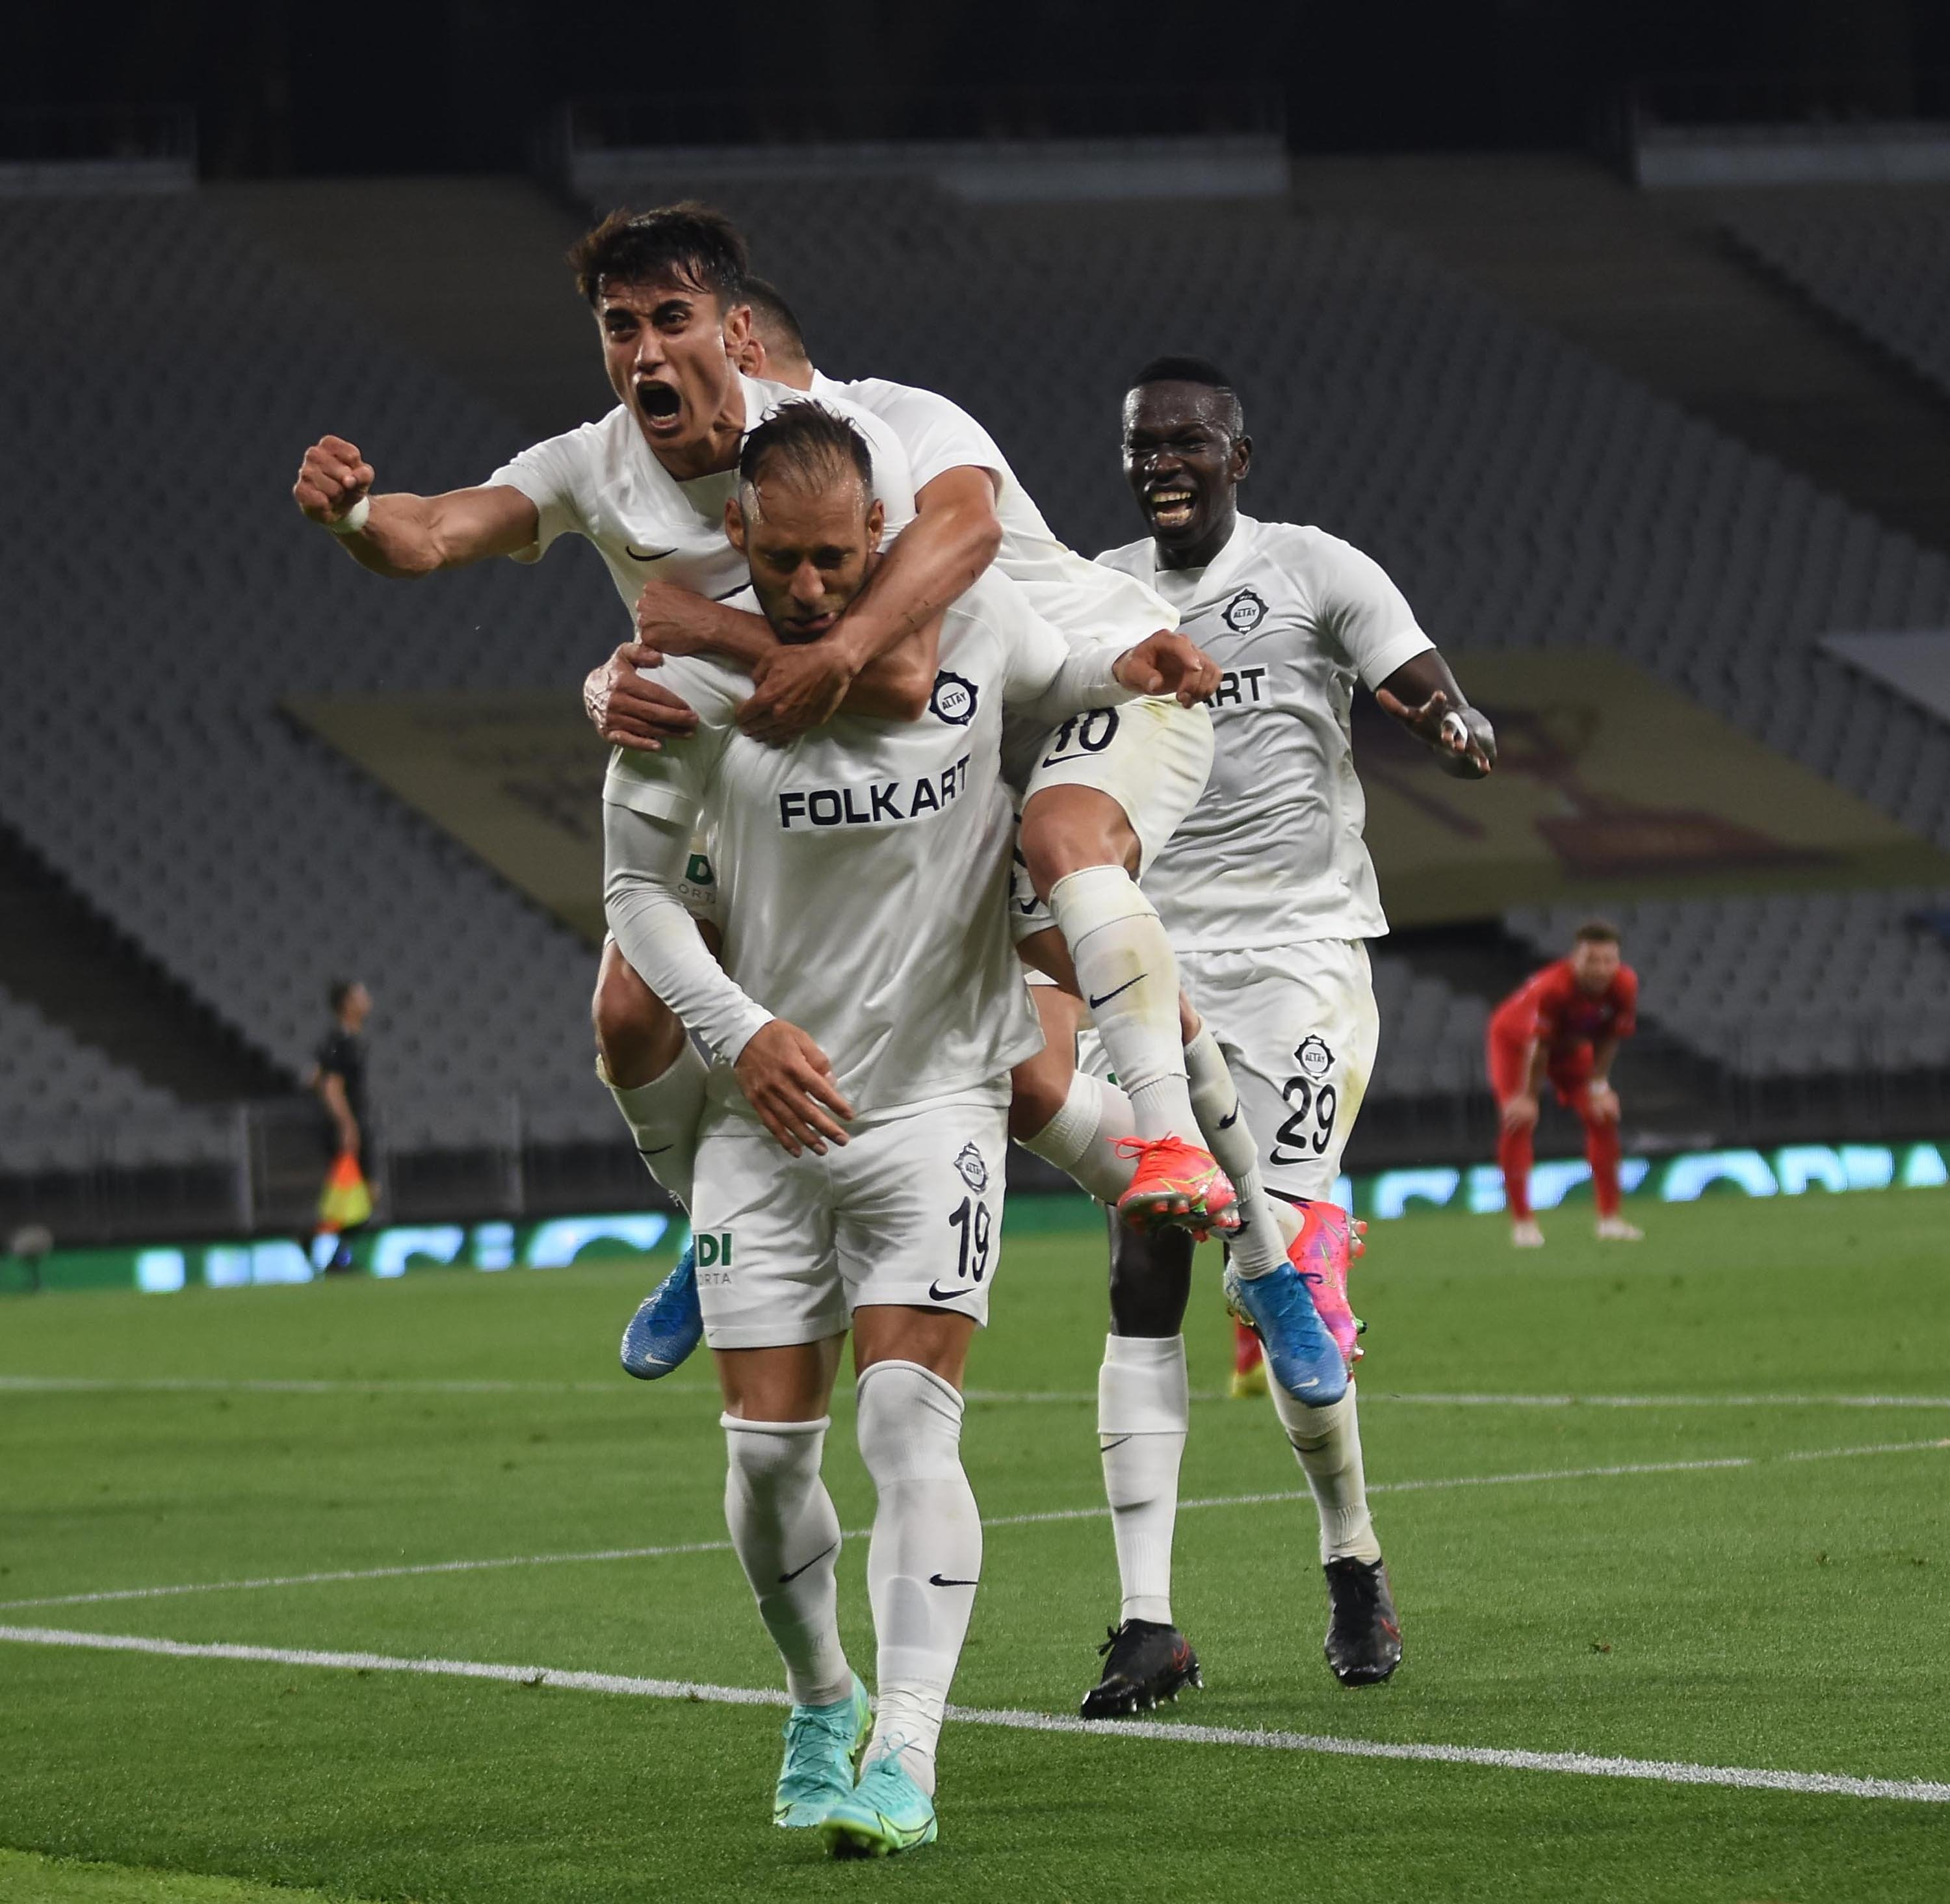 Altay players celebrate as Portuguese forward Marco Paixao scores the winner against Altınordu in the final match of the TFF 1. Lig playoffs at the Atatürk Olympic Stadium, Istanbul, Turkey,  May 26, 2021. (DHA Photo)